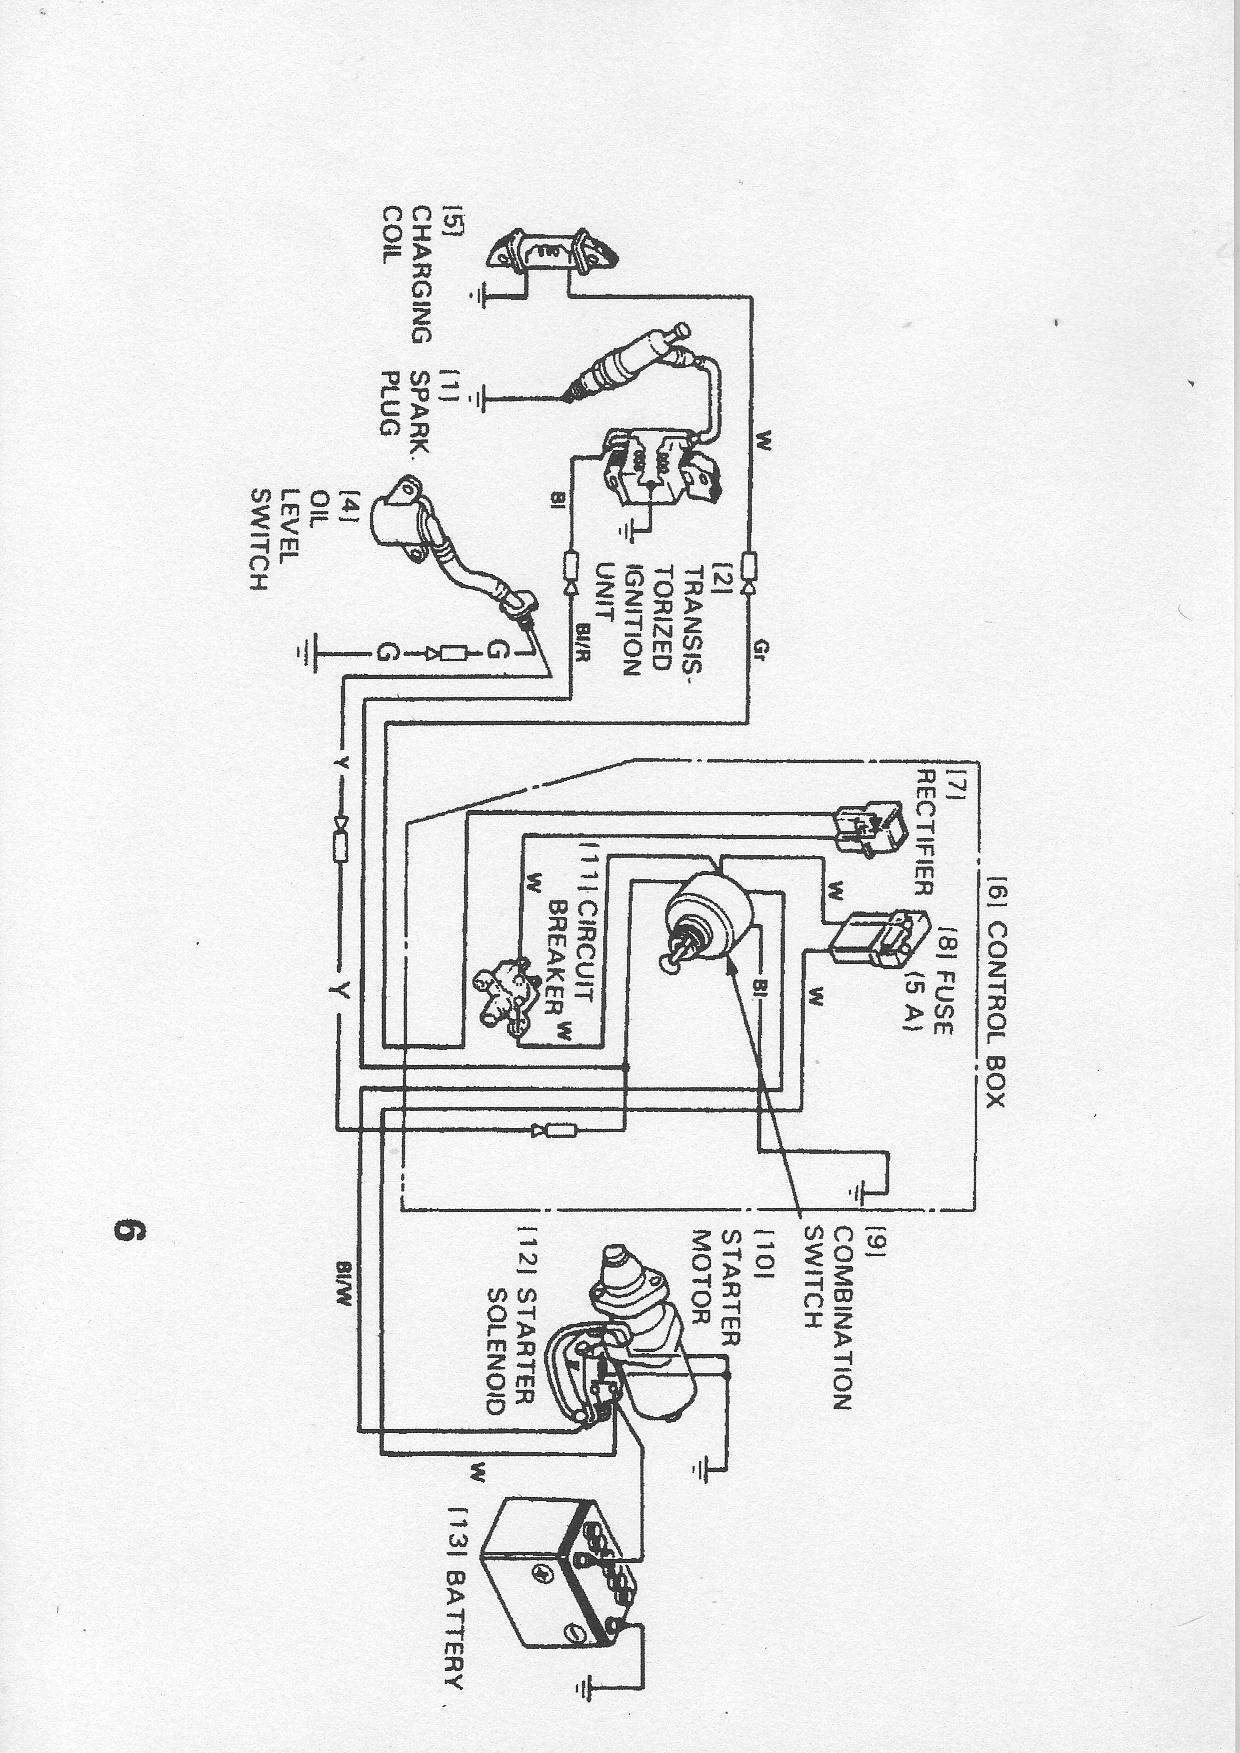 trxr wiring diagram trxr image wiring diagram honda gx140 wiring diagram honda wiring diagrams on trx250r wiring diagram